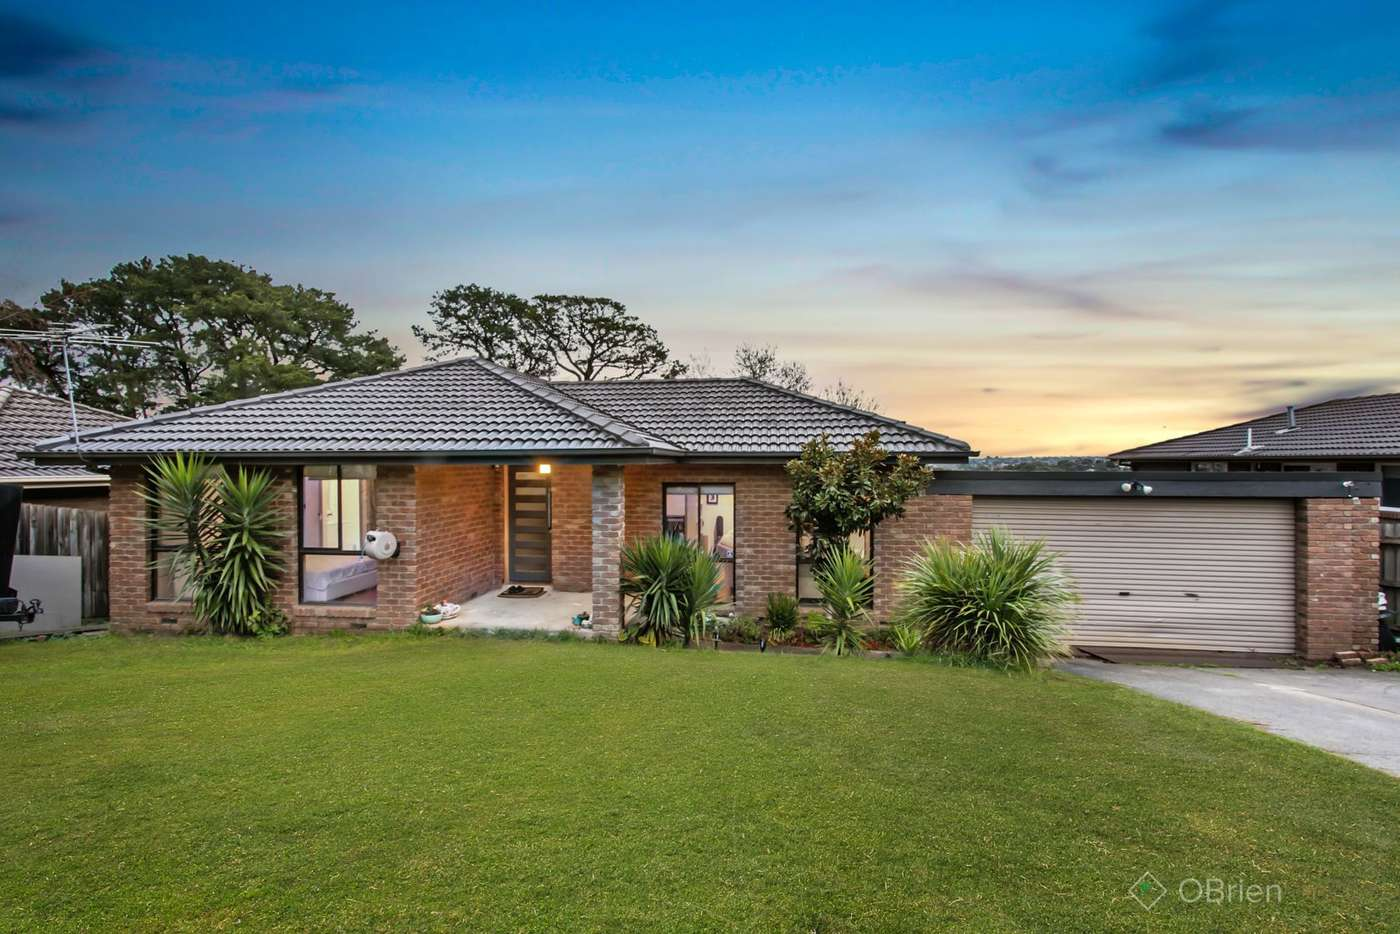 Main view of Homely house listing, 4 Simmonds Place, Endeavour Hills VIC 3802